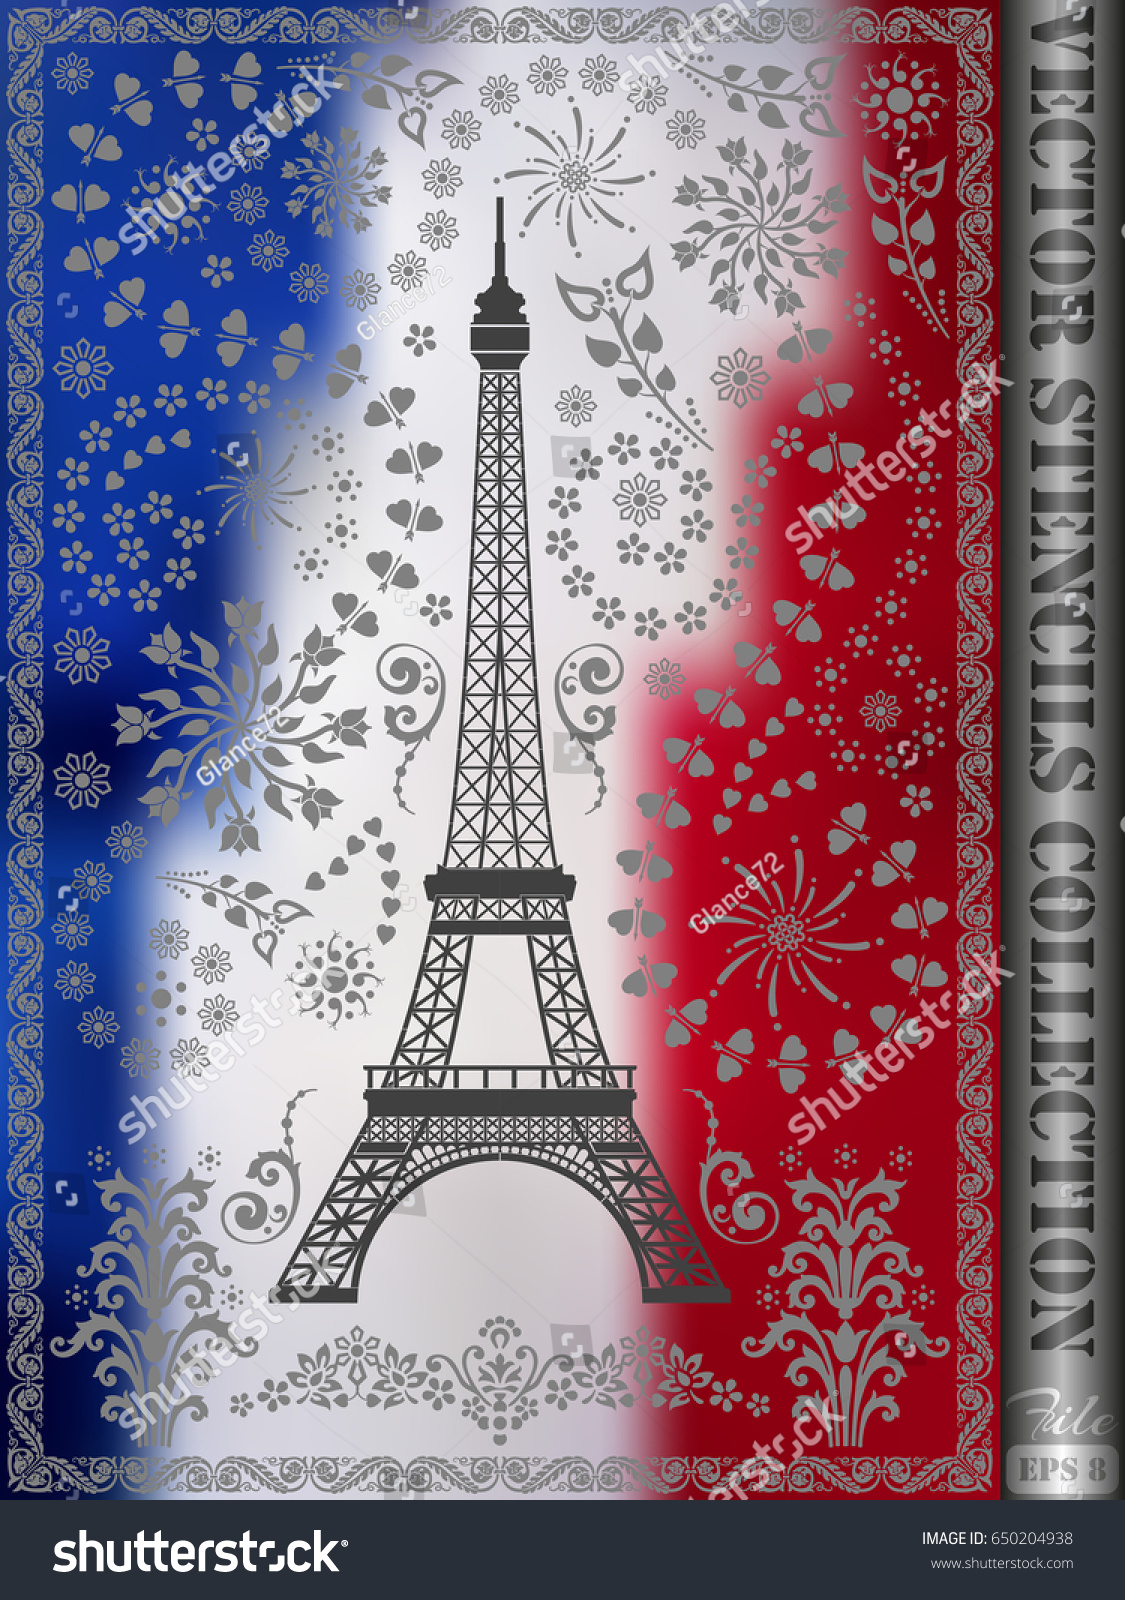 Stencil Eiffel Tower Ornament Made Flowers Stock Vector (Royalty ...